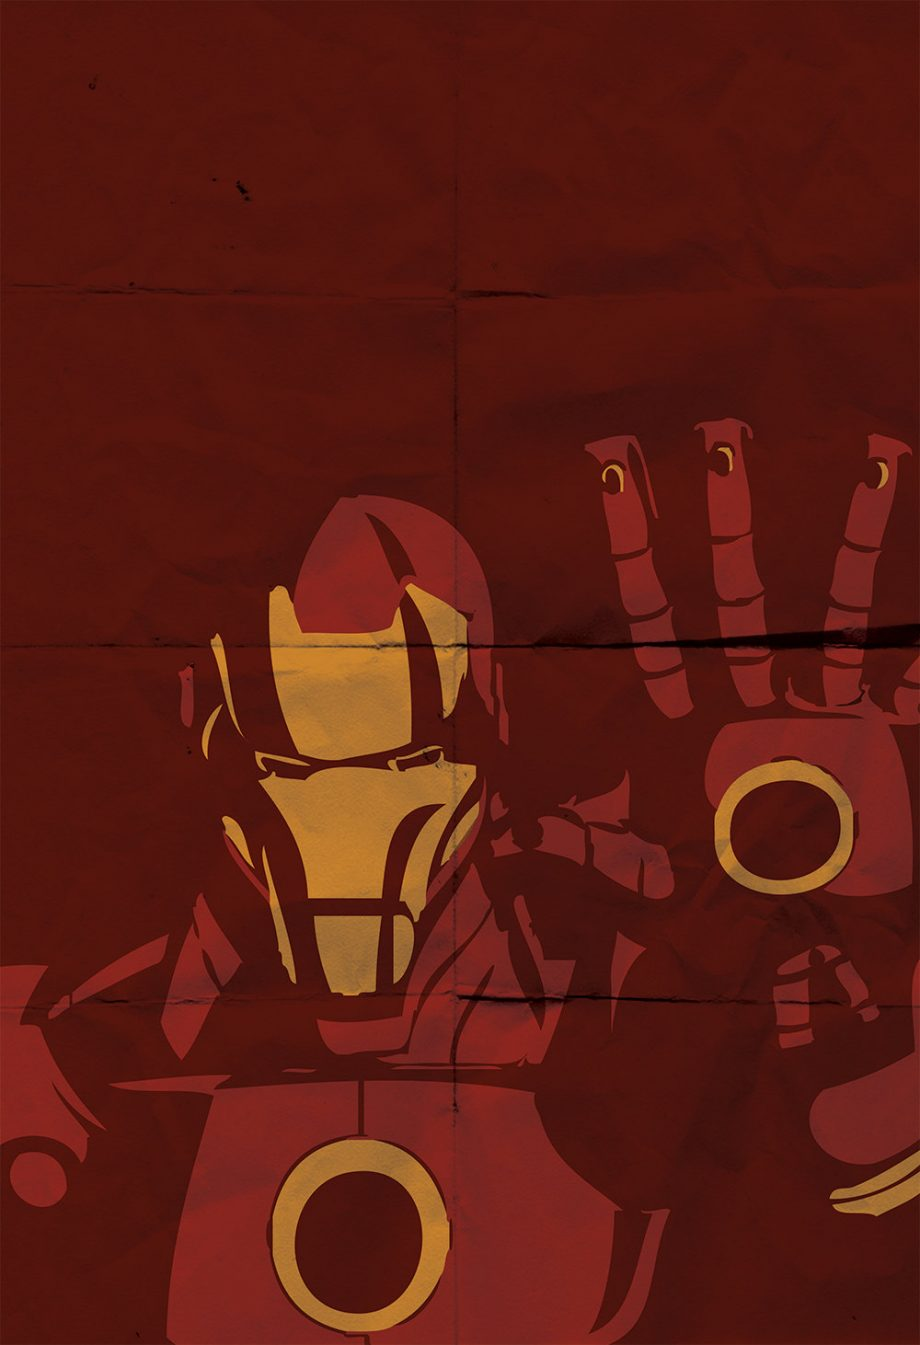 iron-man-avengers-poster-illustration-marvel-comics-tony-stark-giclee-large-poster-print-on-satin-or-cotton-canvas-superhero-5817aaf52.jpg